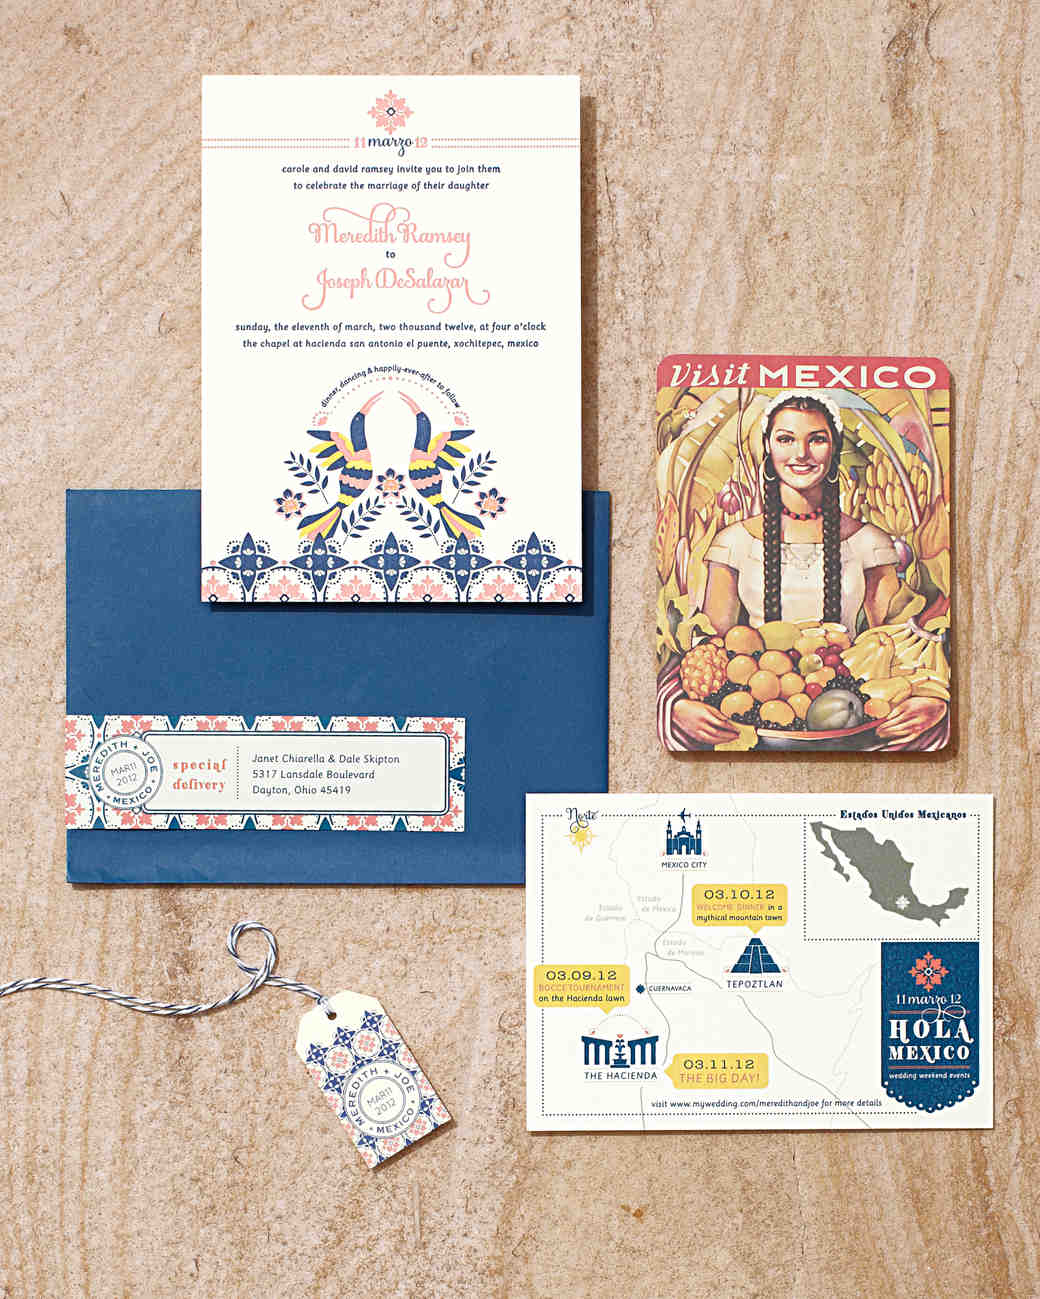 What Is The Etiquette For Wedding Invitations: Destination Wedding Etiquette Dos And Don'ts